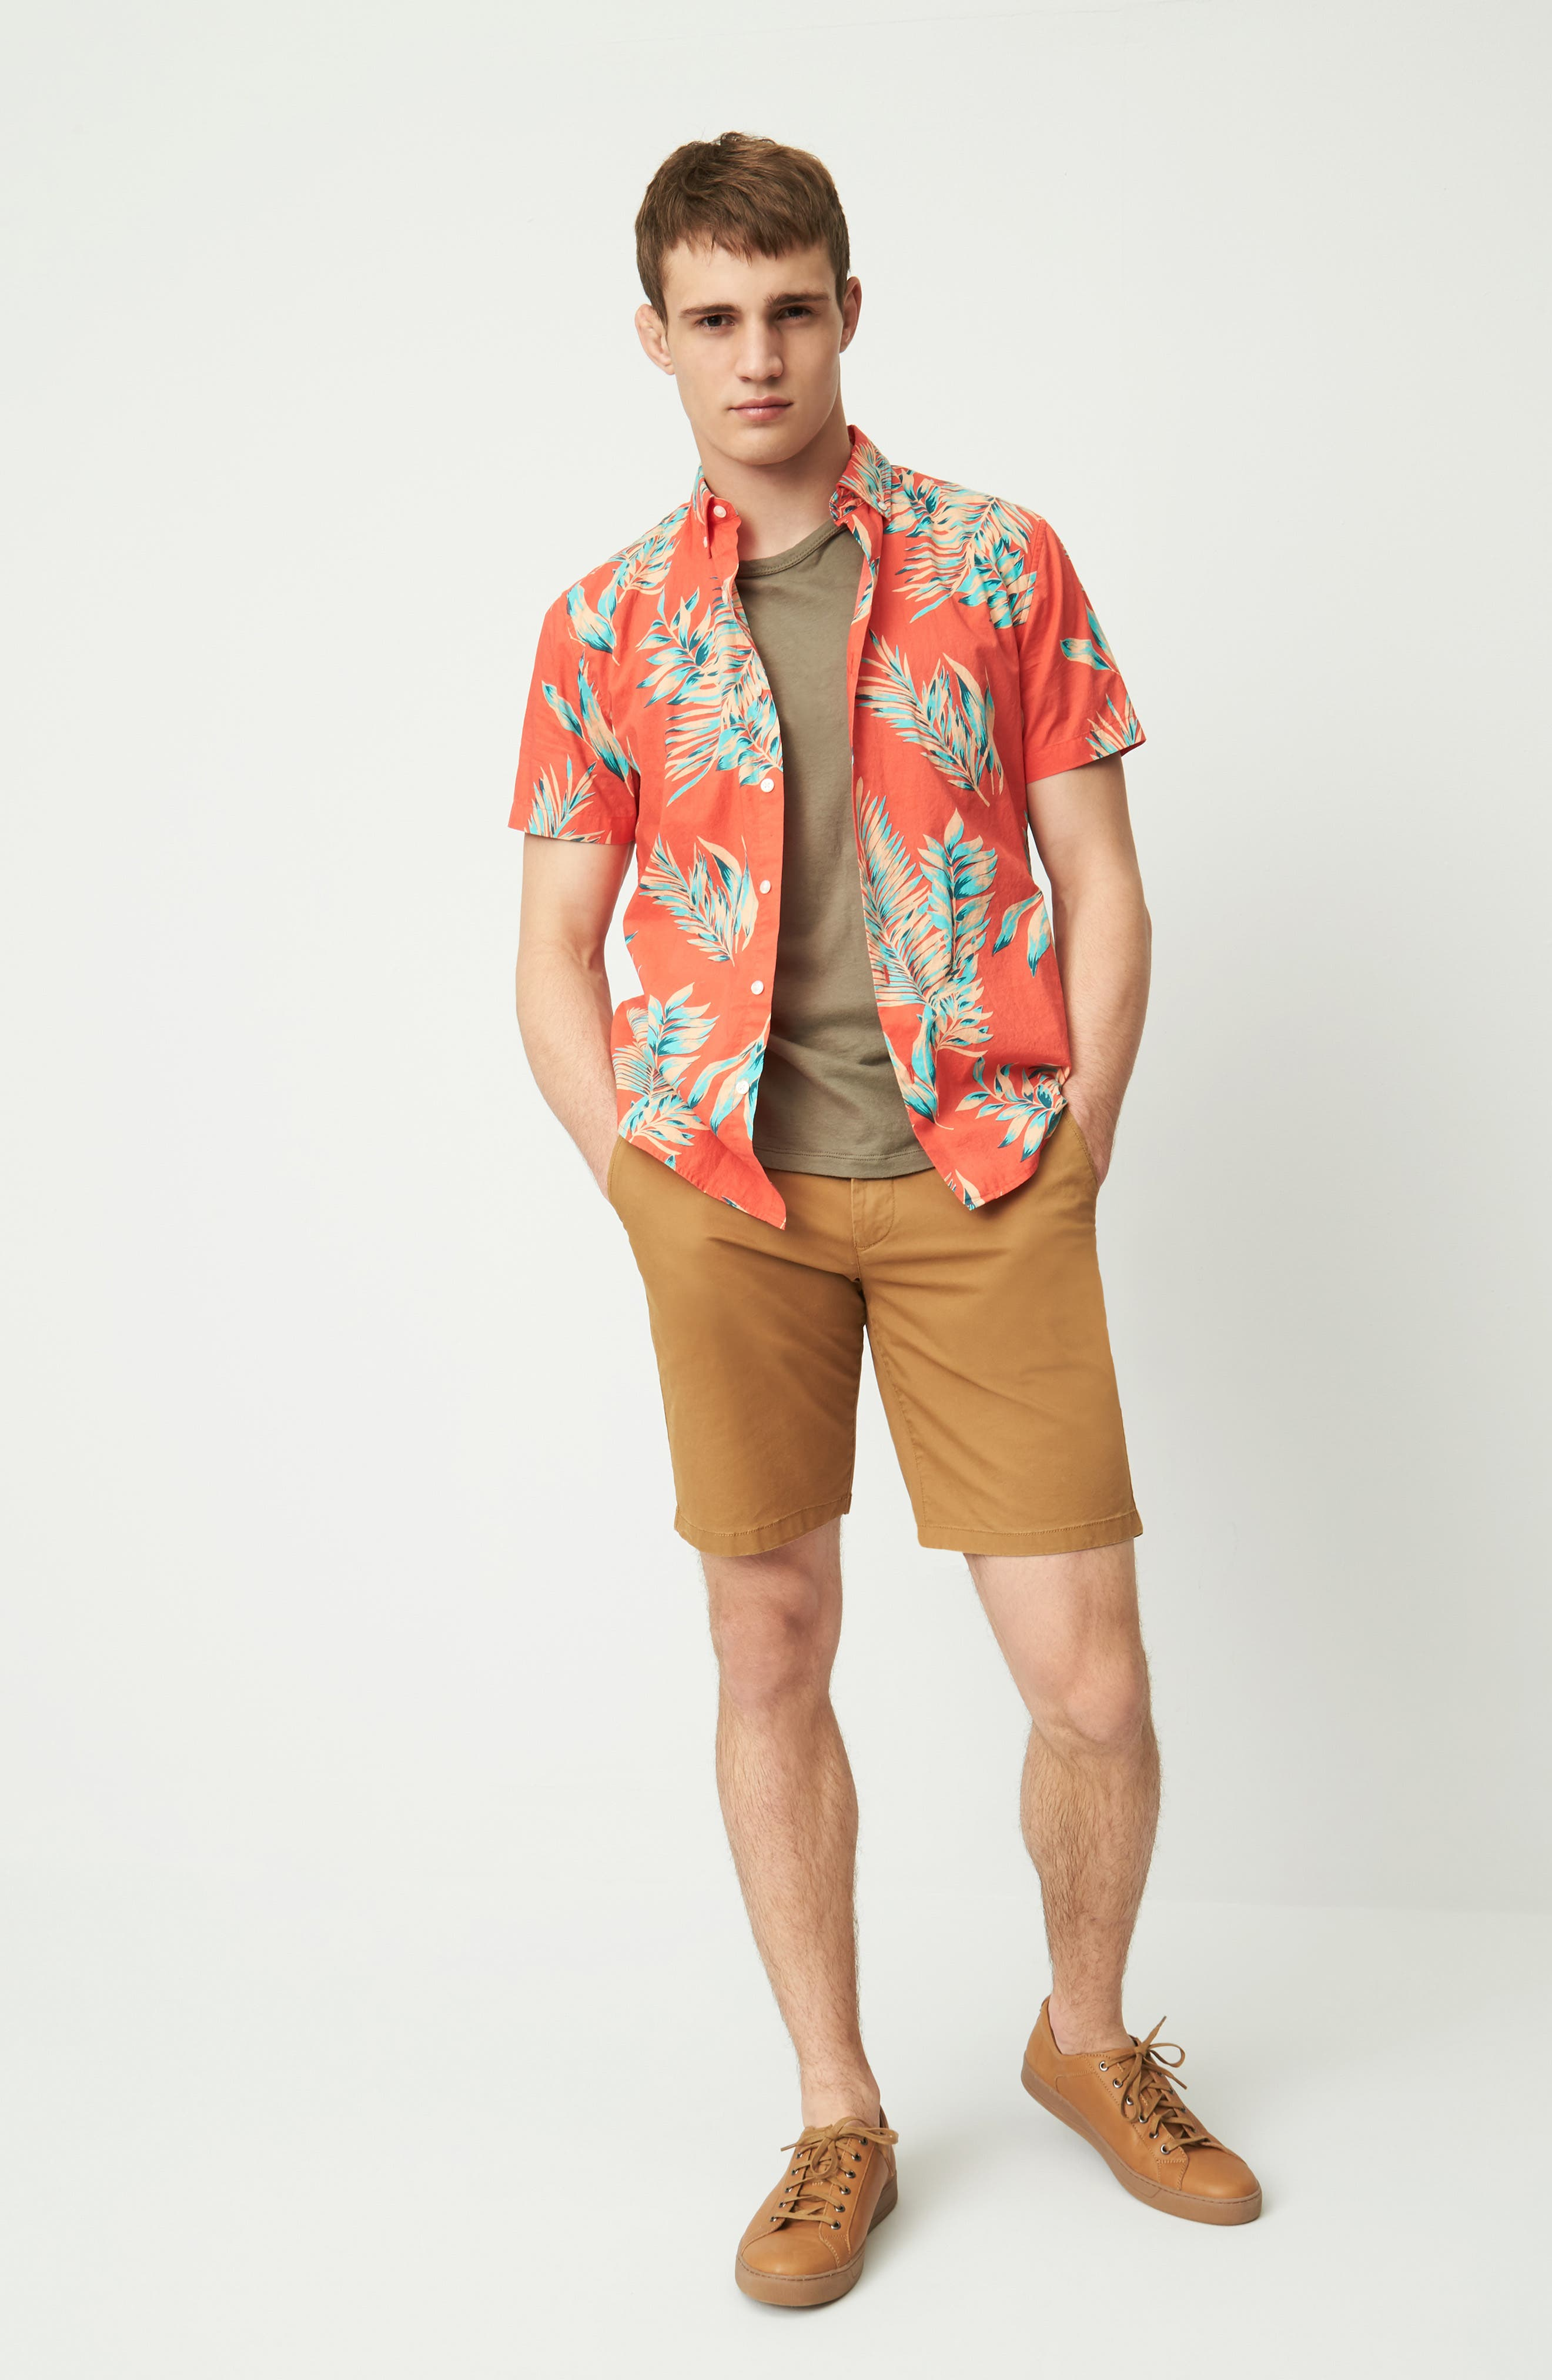 Bonobos Sport Shirt, Shorts & James Perse T-Shirt Outfit with Accessories